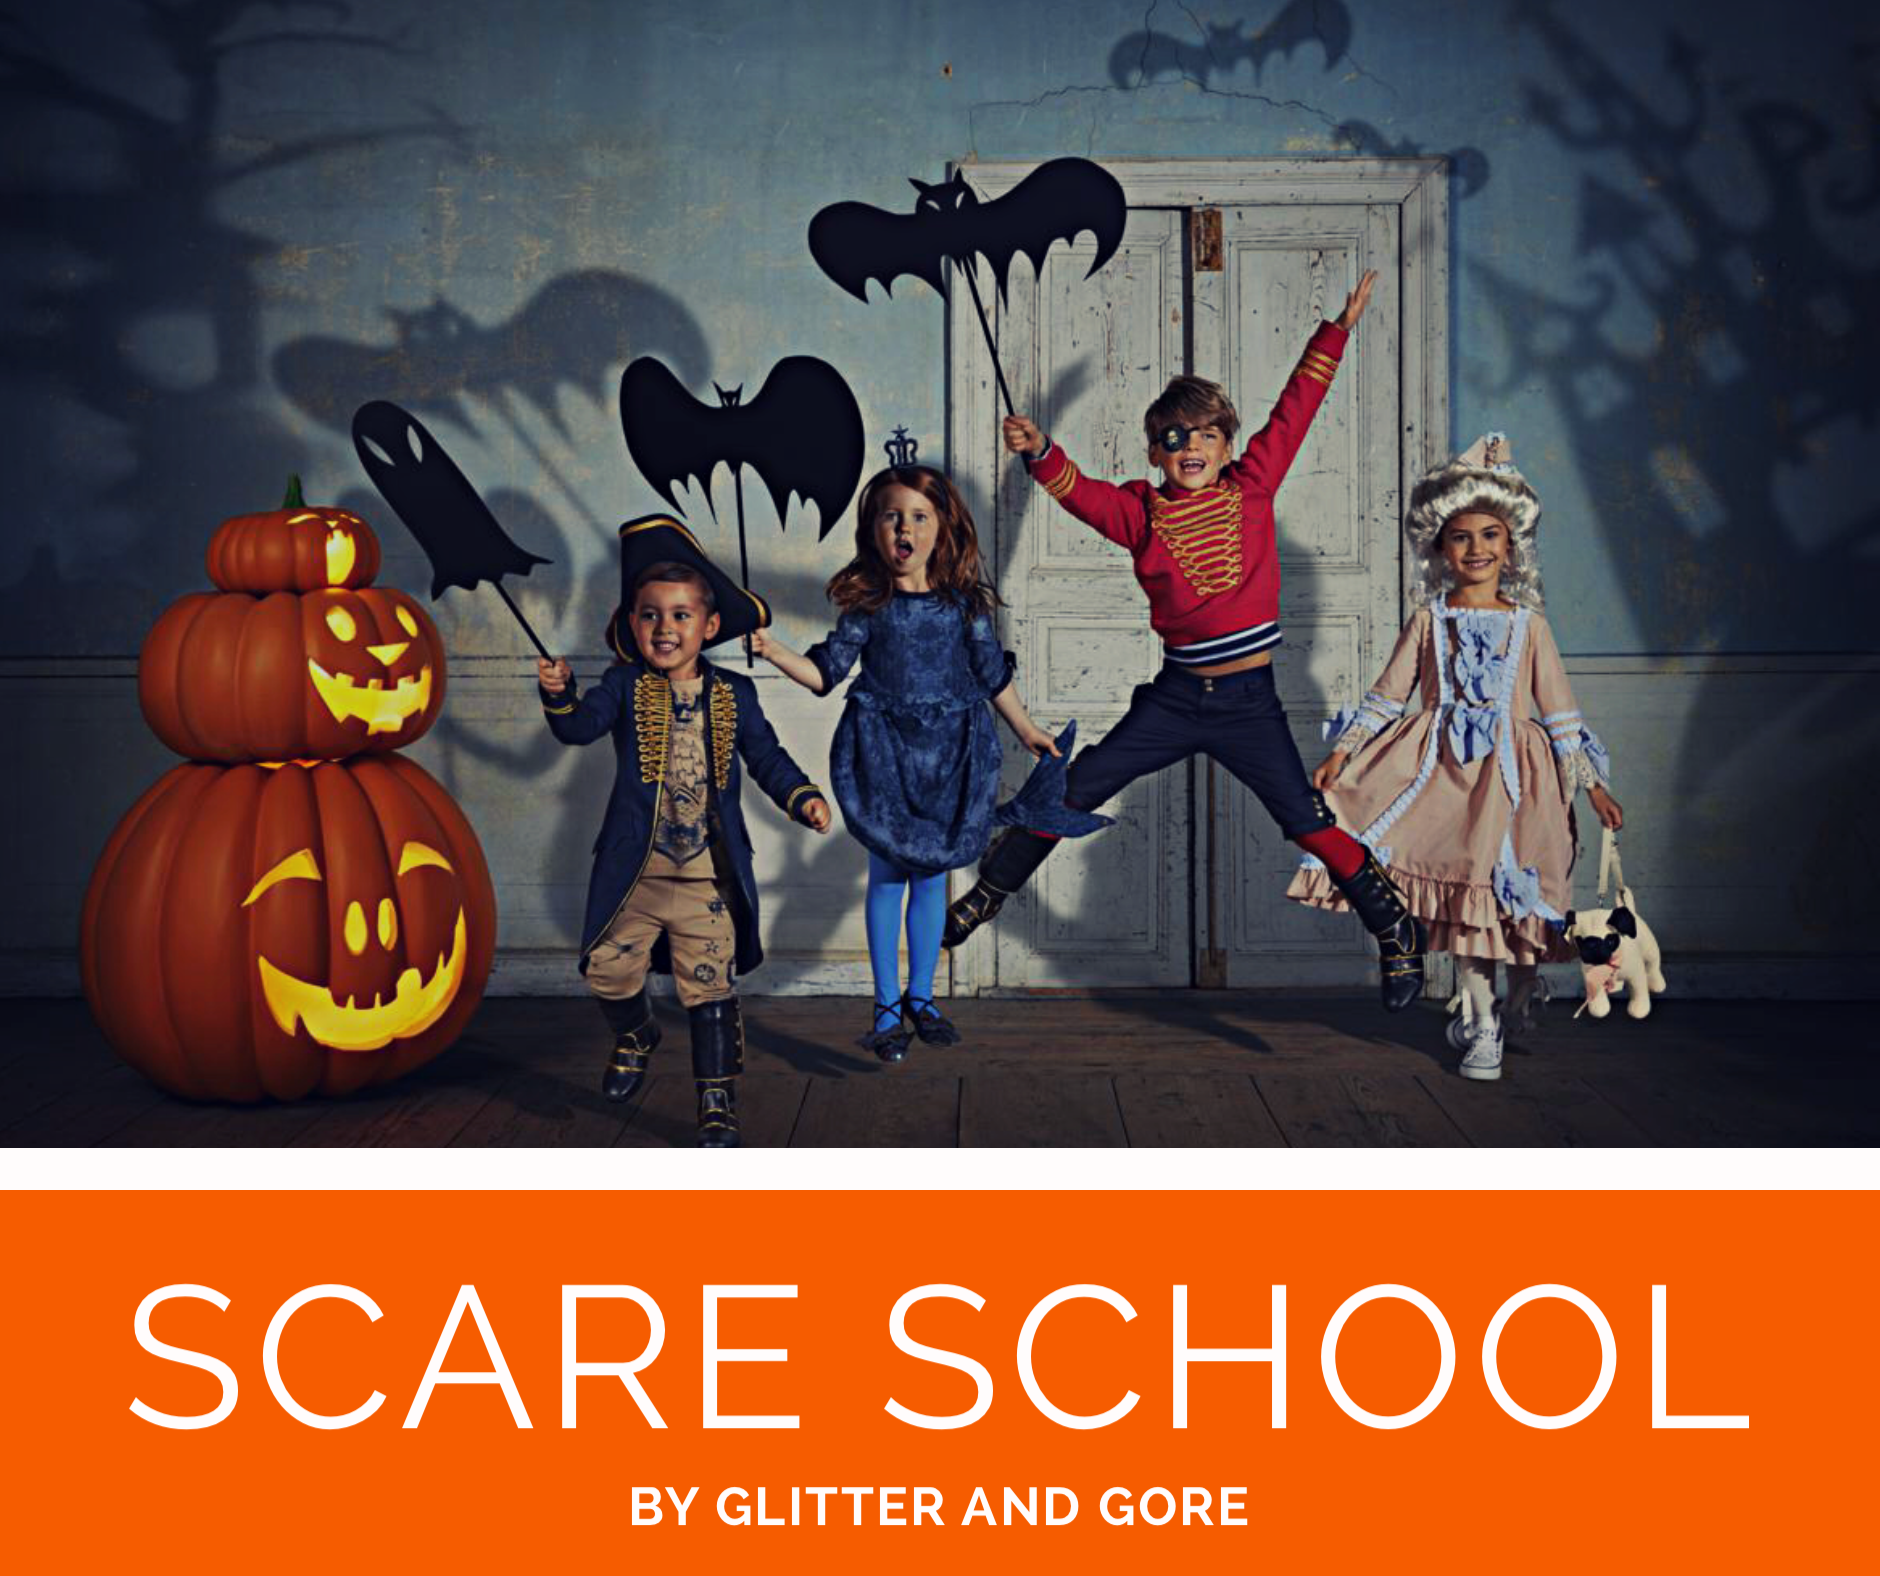 Scare_School_Glitter_and_gore